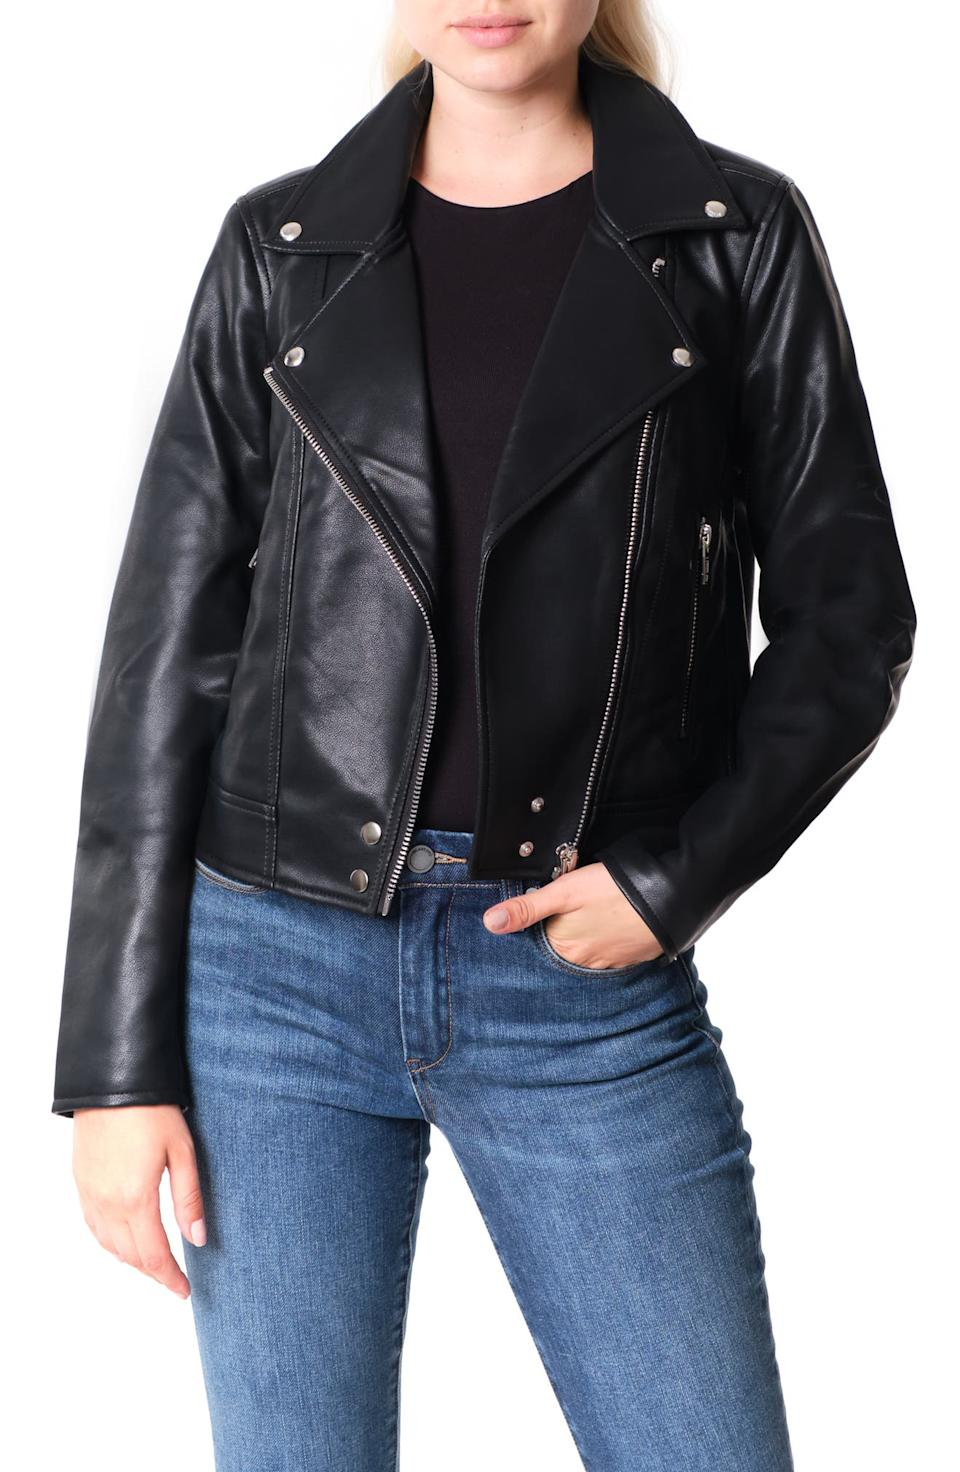 BlankNYC Good Vibes Faux Leather Moto Jacket. Image via Nordstrom.